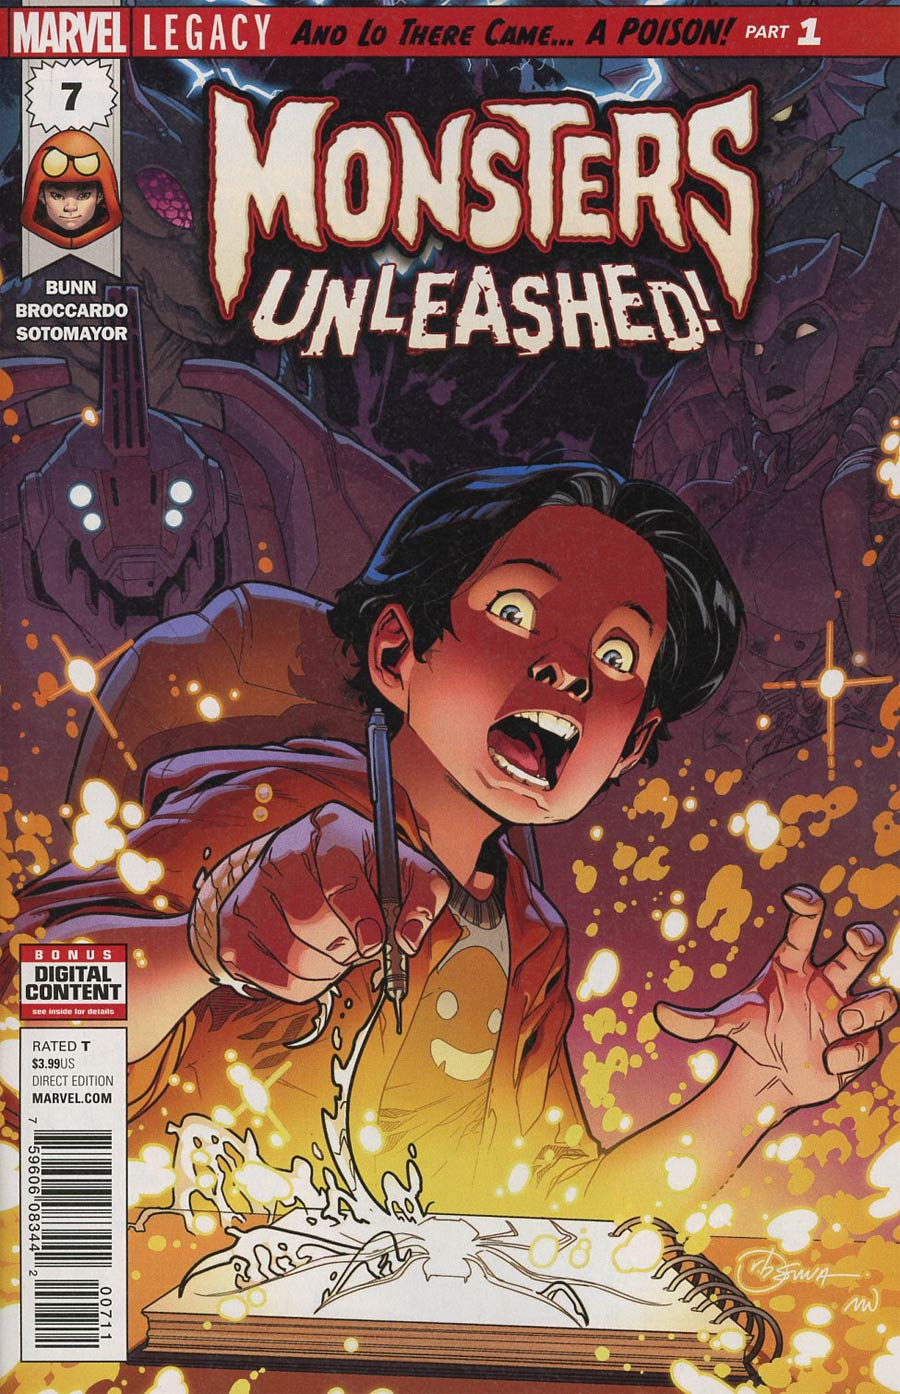 Monsters Unleashed Vol 2 #7 Cover A 1st Ptg Regular RB Silva Cover (Marvel Legacy Tie-In)